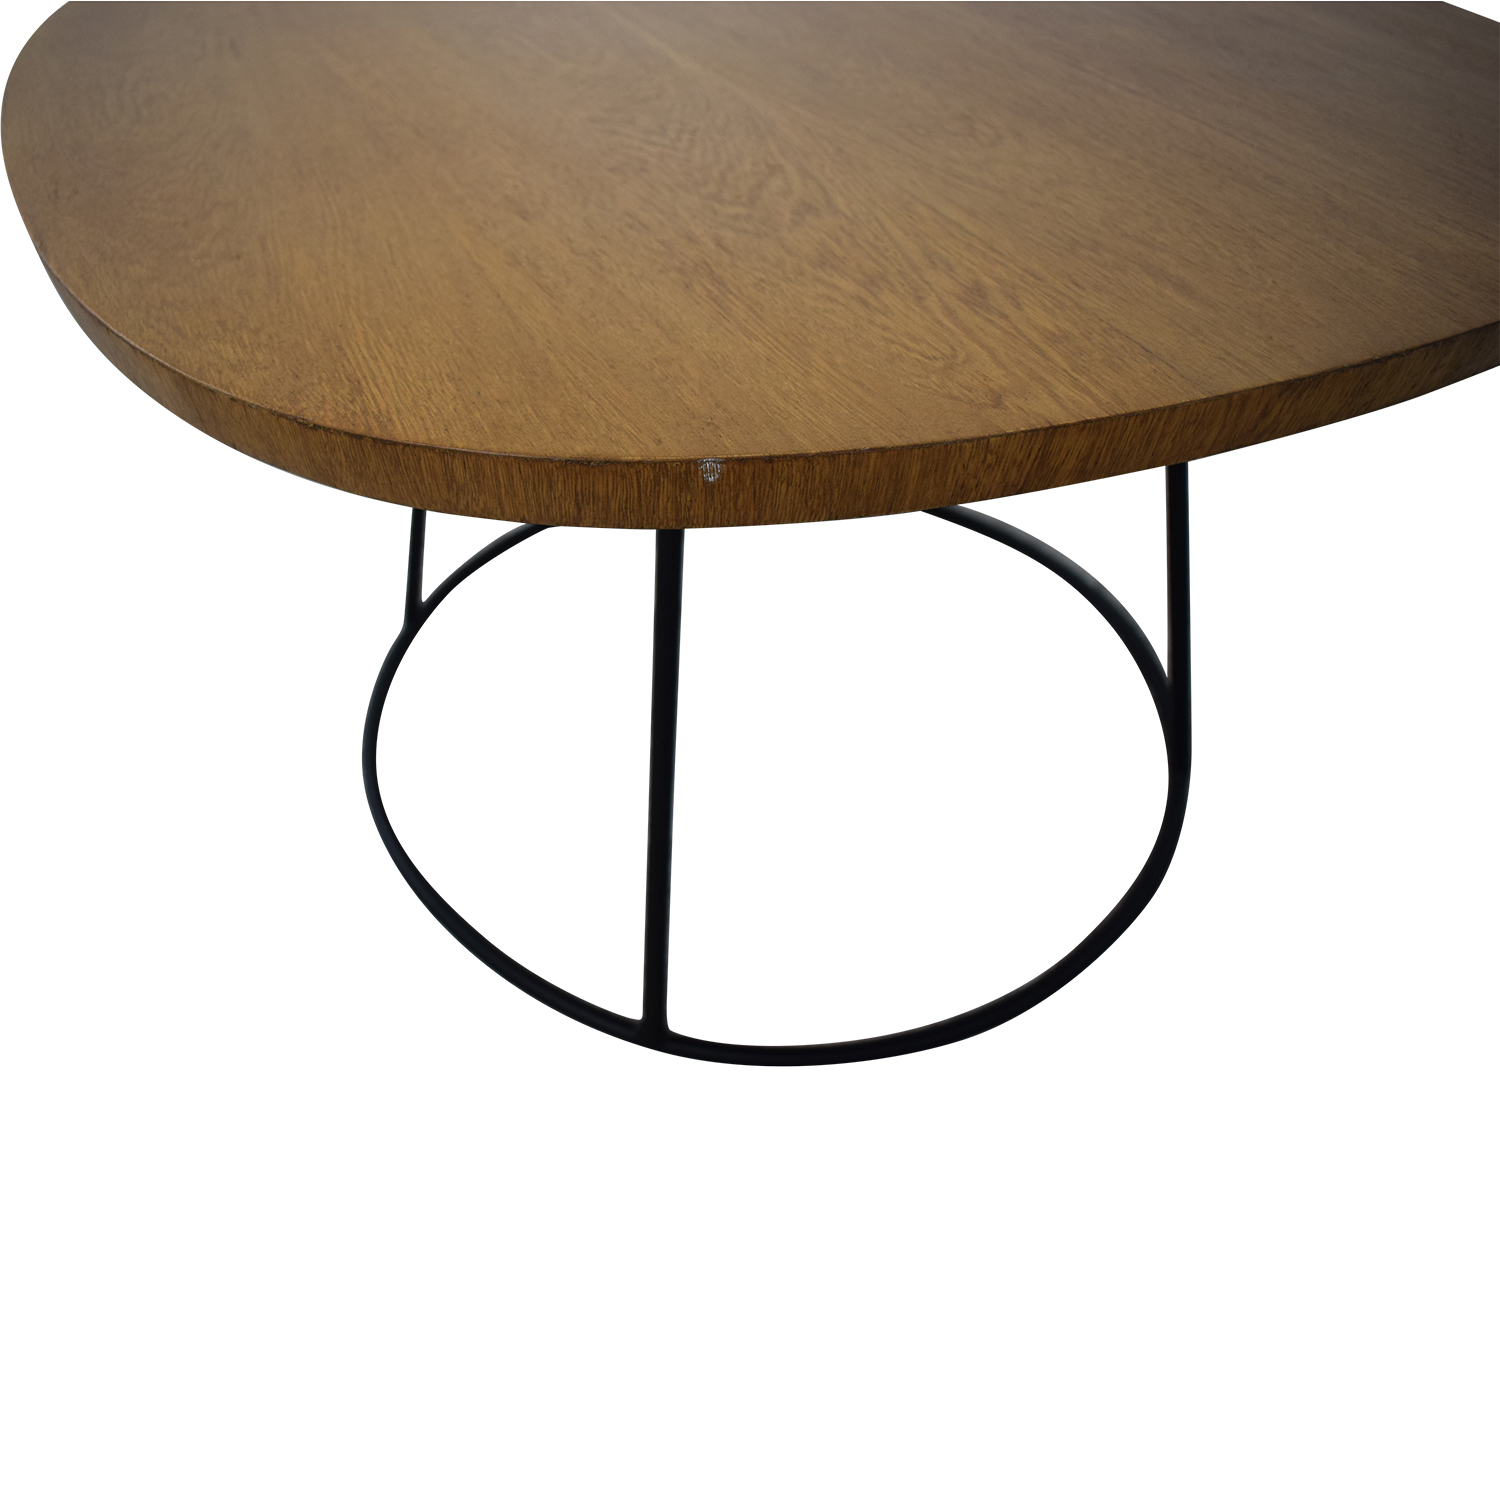 Zientte Zientte Sierra Round Cornered Square Side Table walnut brown